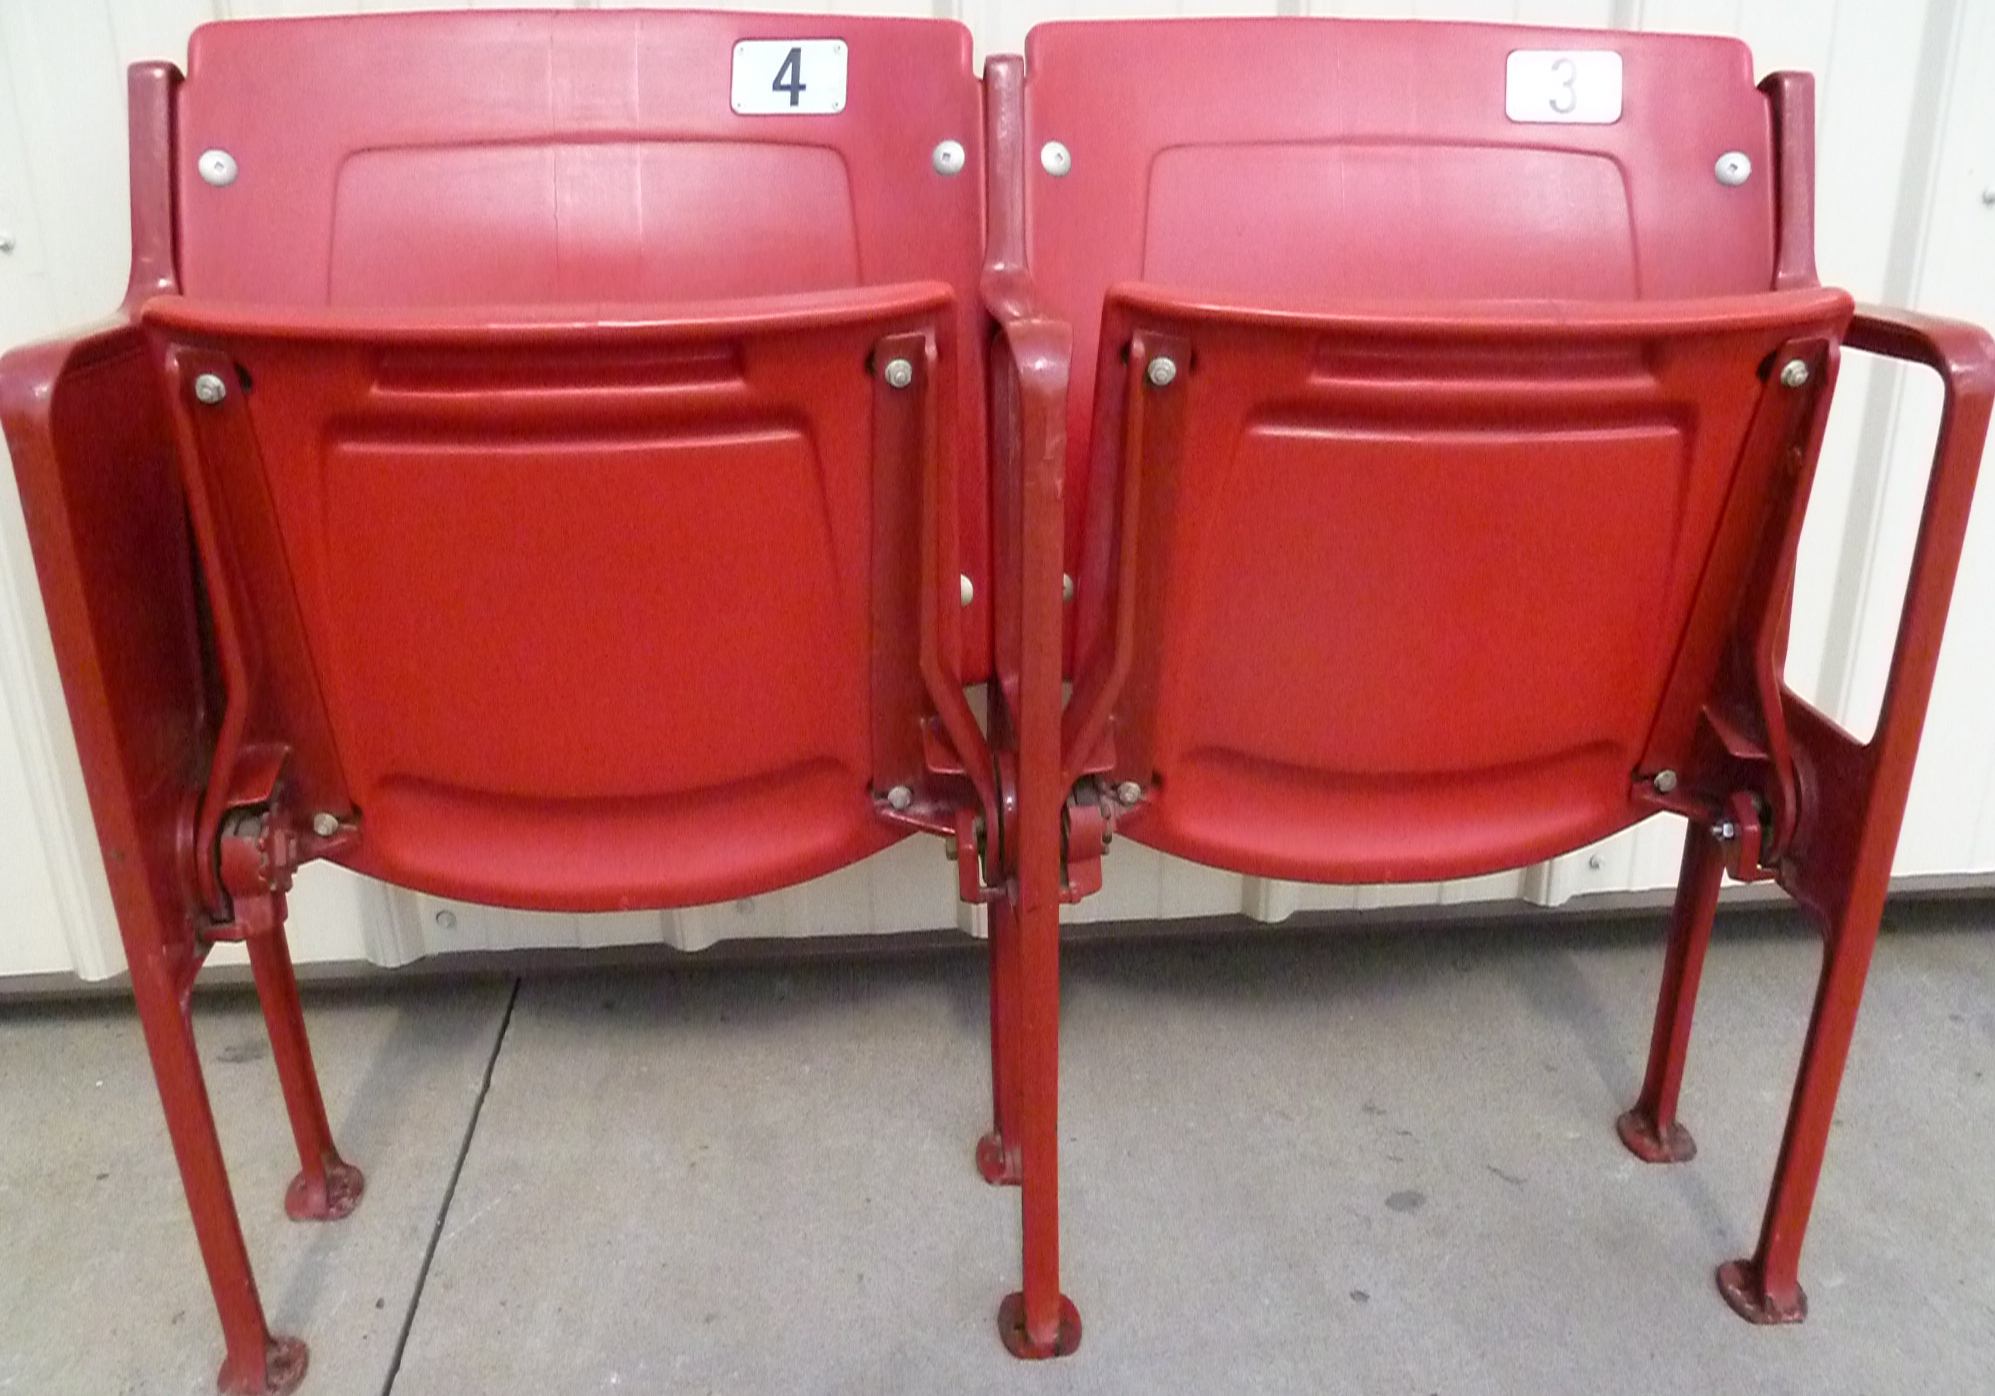 Busch Stadium seats - red floor mount